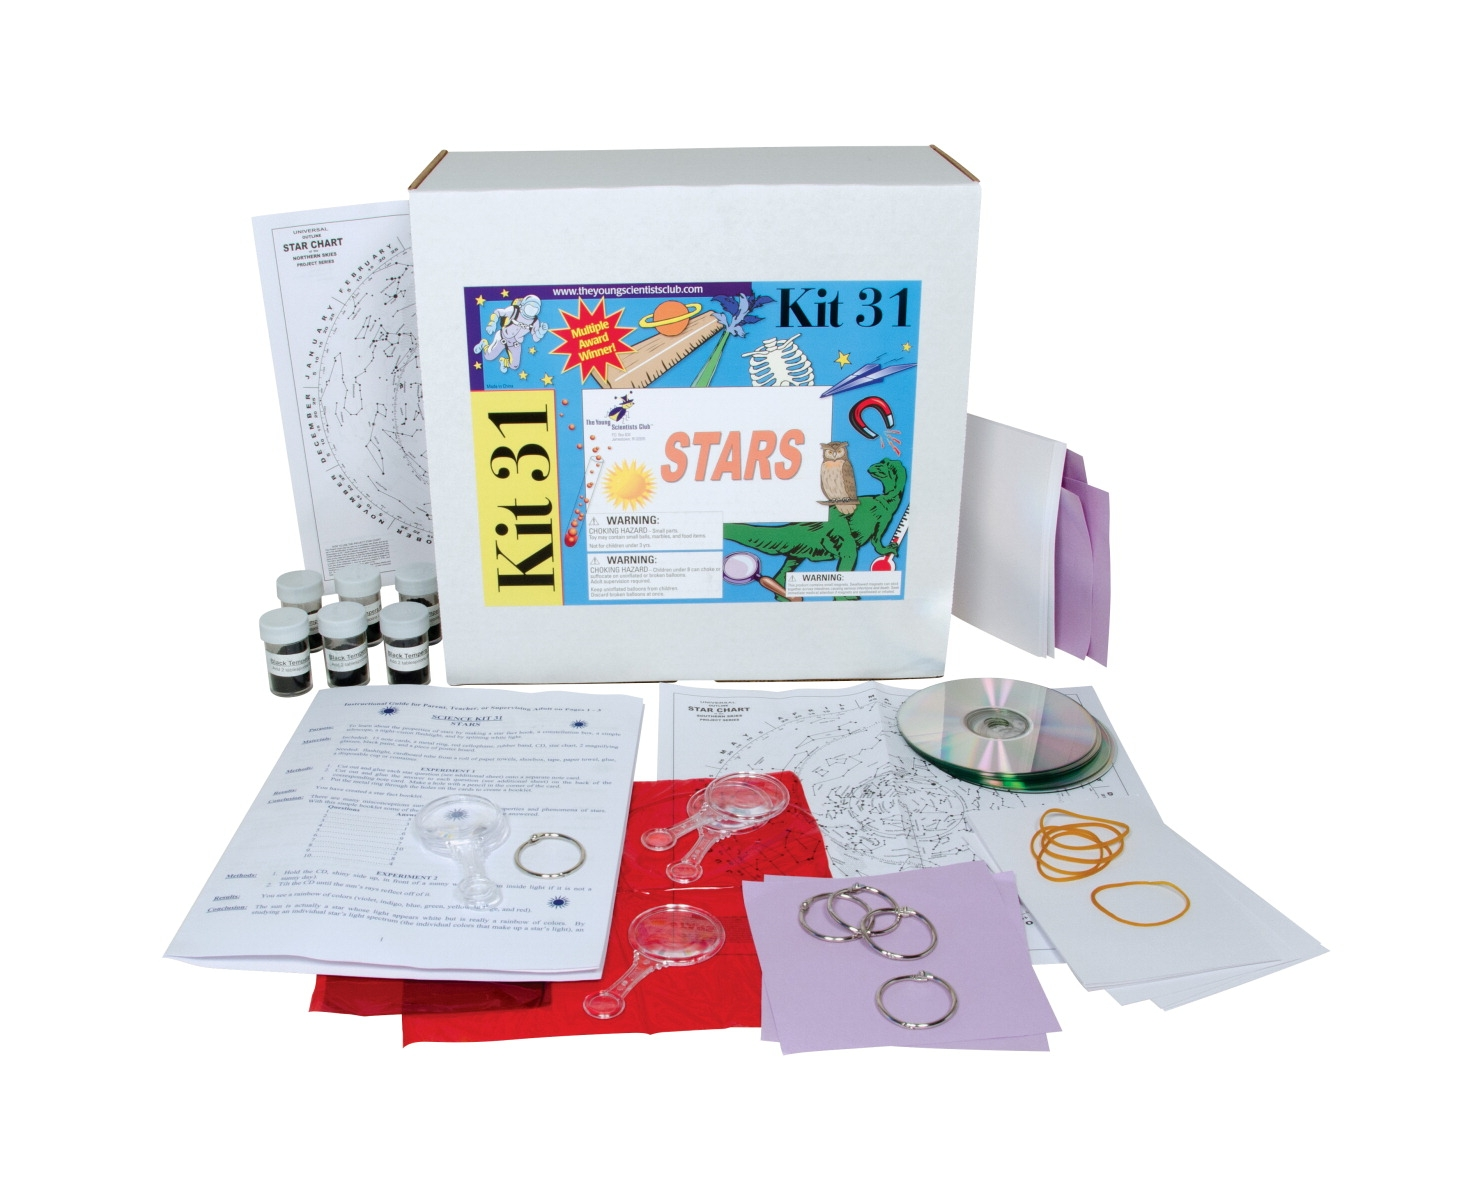 Young Scientists Club Stars Kit; 13 In W X 10 In H X 8 In D - 1464098 - Instructional Materials Resources Science Activities Equipment Physical Science Projects Books 1464098